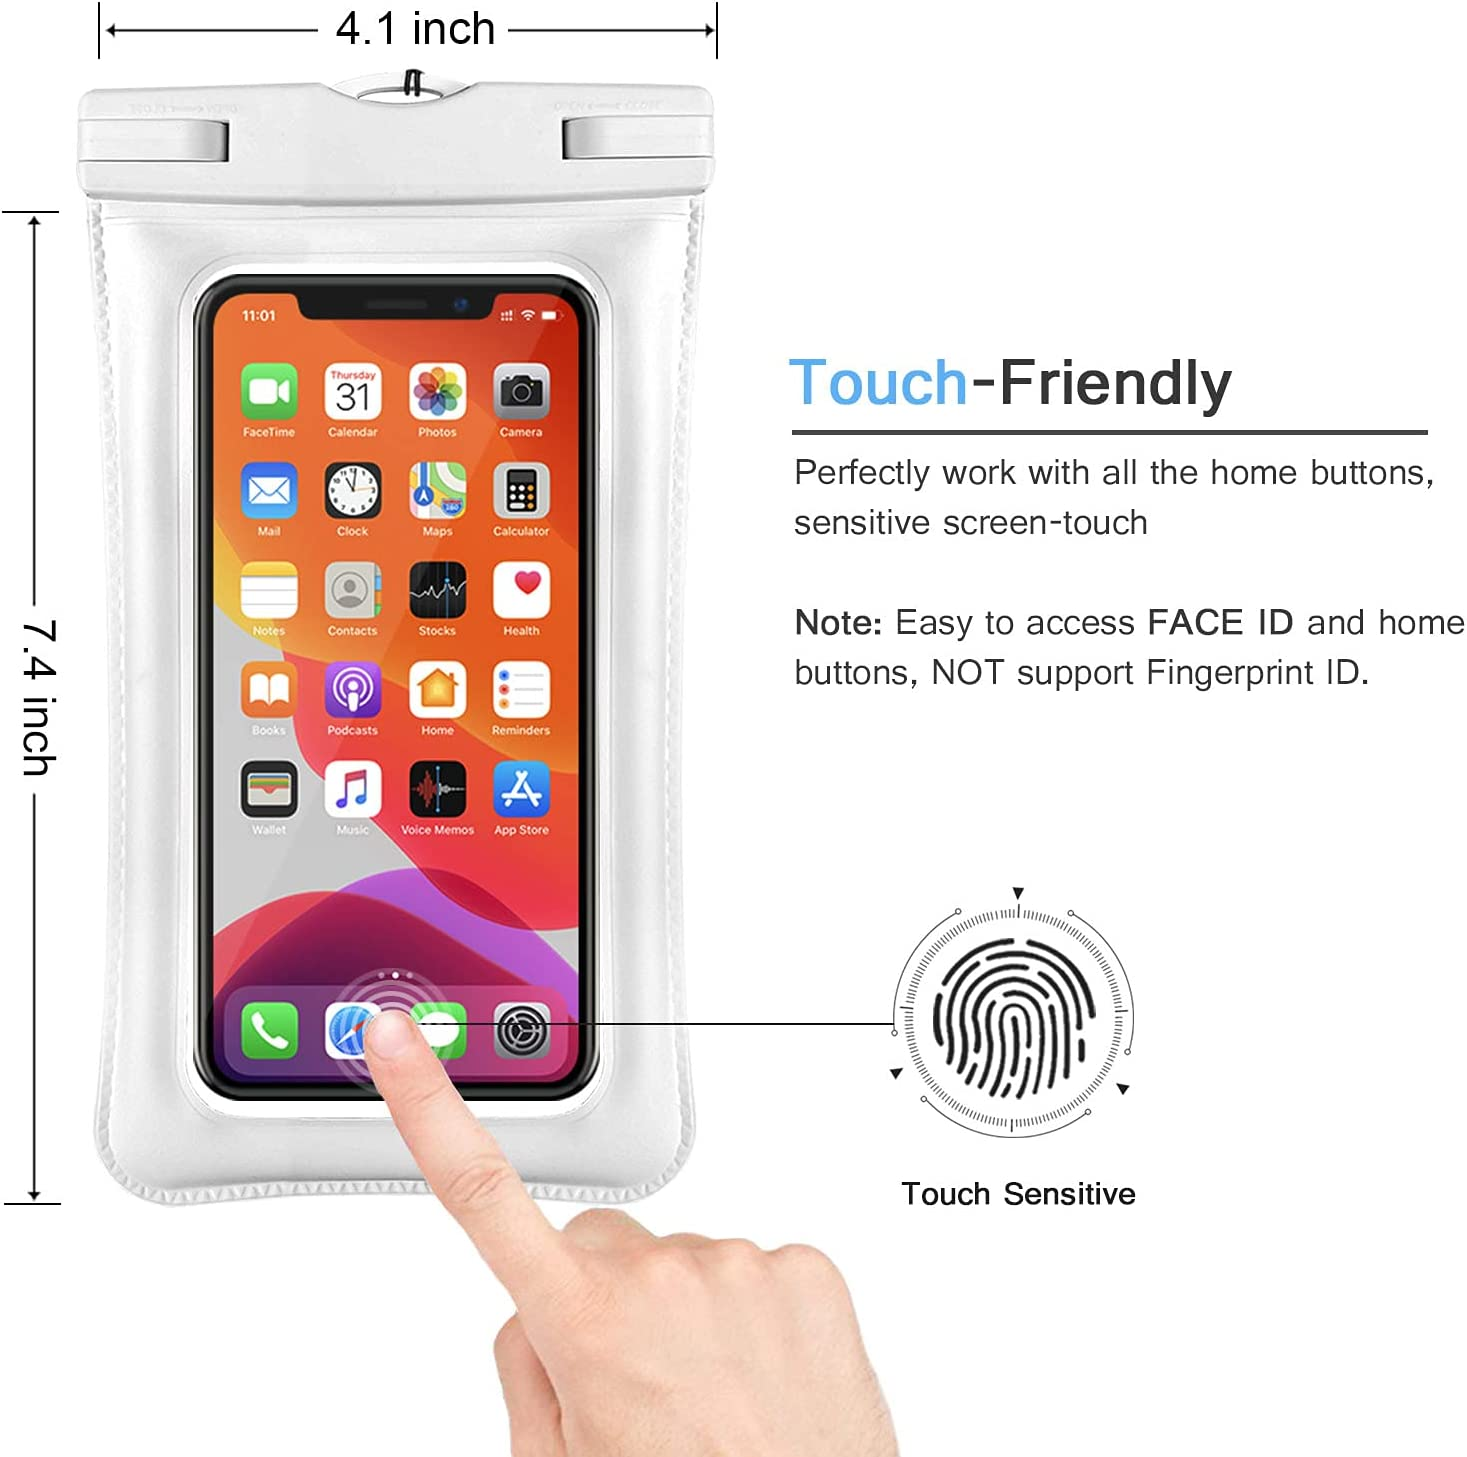 Universal Waterproof Case, IFCASE TPU Phone Dry Bag Pouch for iPhone 12 Pro Max, 11 XS XR X 6 7 SE, Samsung Galaxy S21 S20 S10 S9 Plus, S21 Ultra 5G, A72 A52, LG Stylo 6 5 (White) 2 Pack